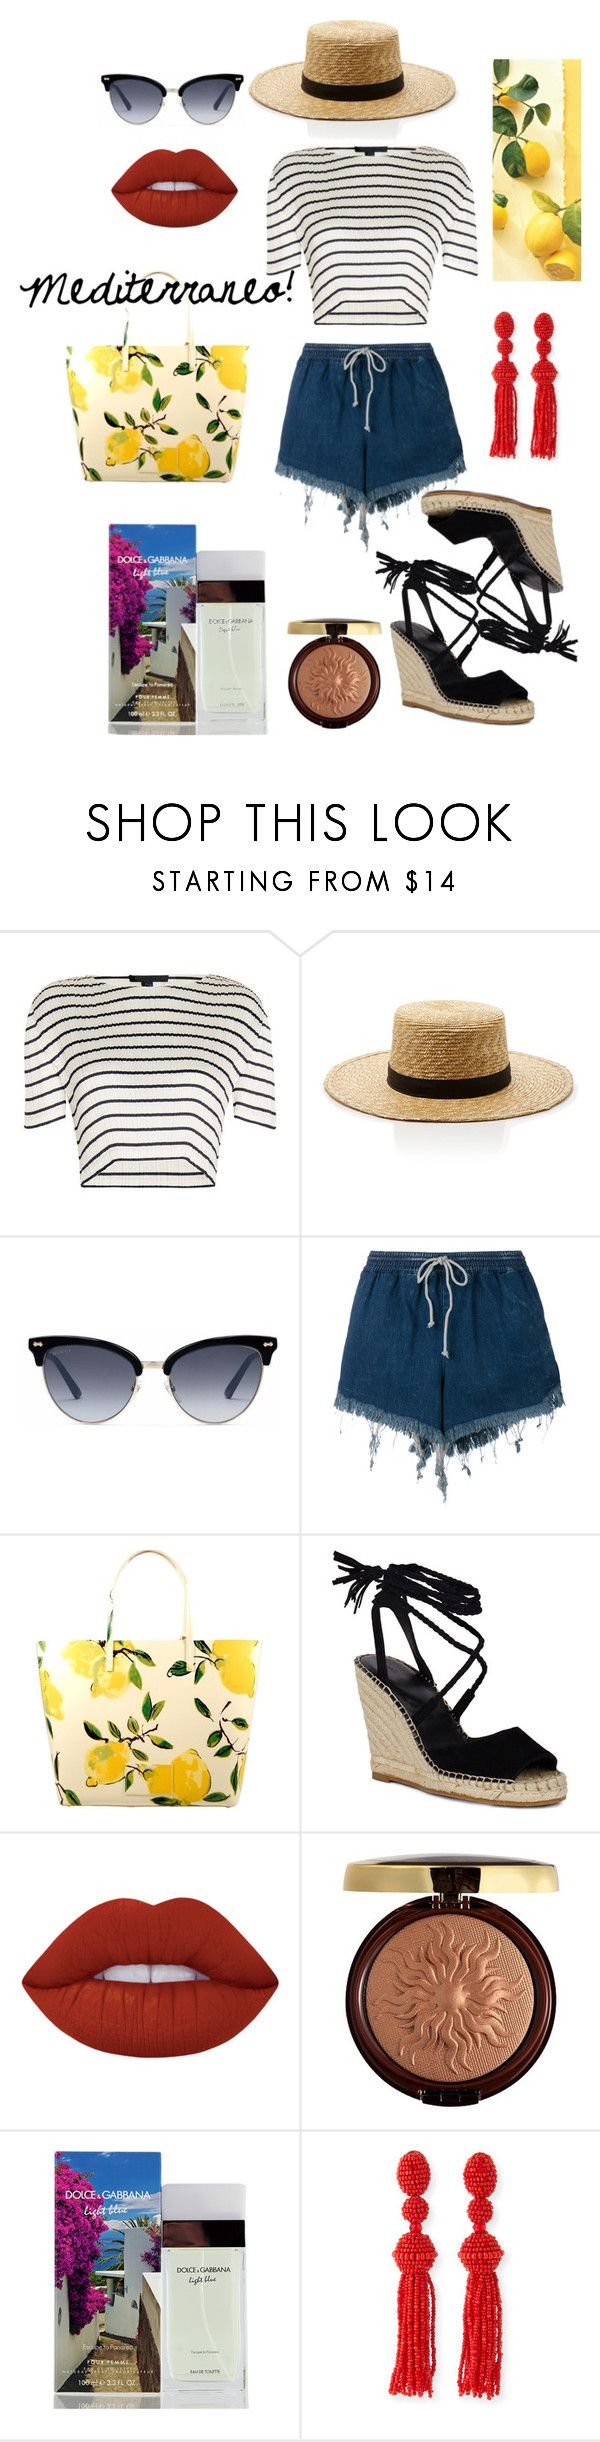 """summer #2"" by evitaom on Polyvore featuring Alexander Wang, Janessa Leone, Gucci, Chloé, Kate Spade, Lime Crime, Physicians Formula, Dolce&Gabbana and Oscar de la Renta"